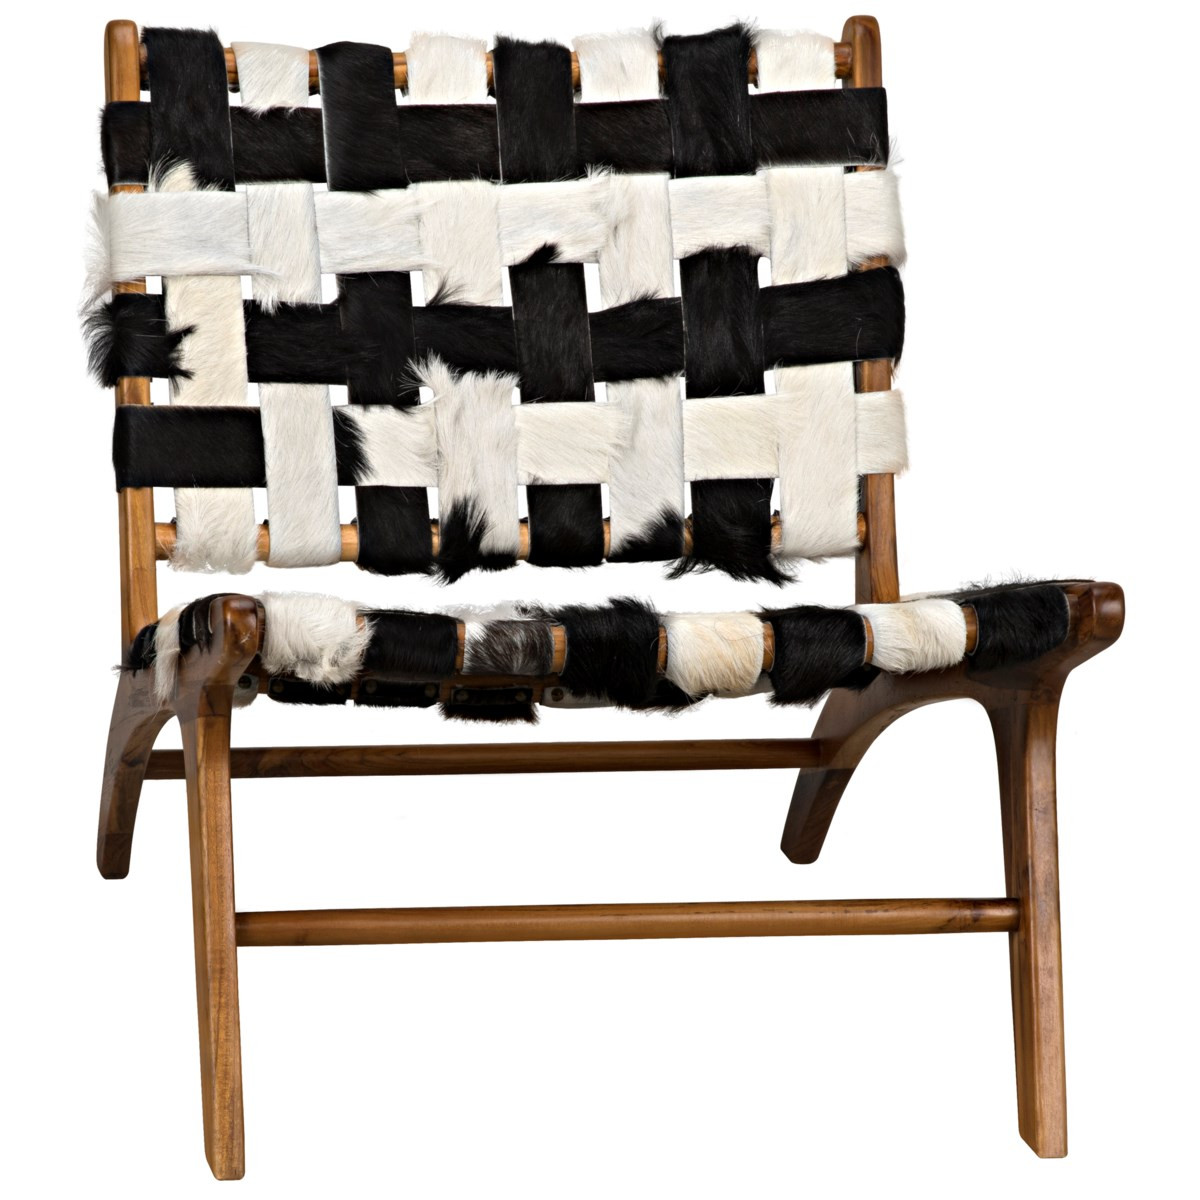 Kamara Chair With No Arm, Black And White Cow Hide